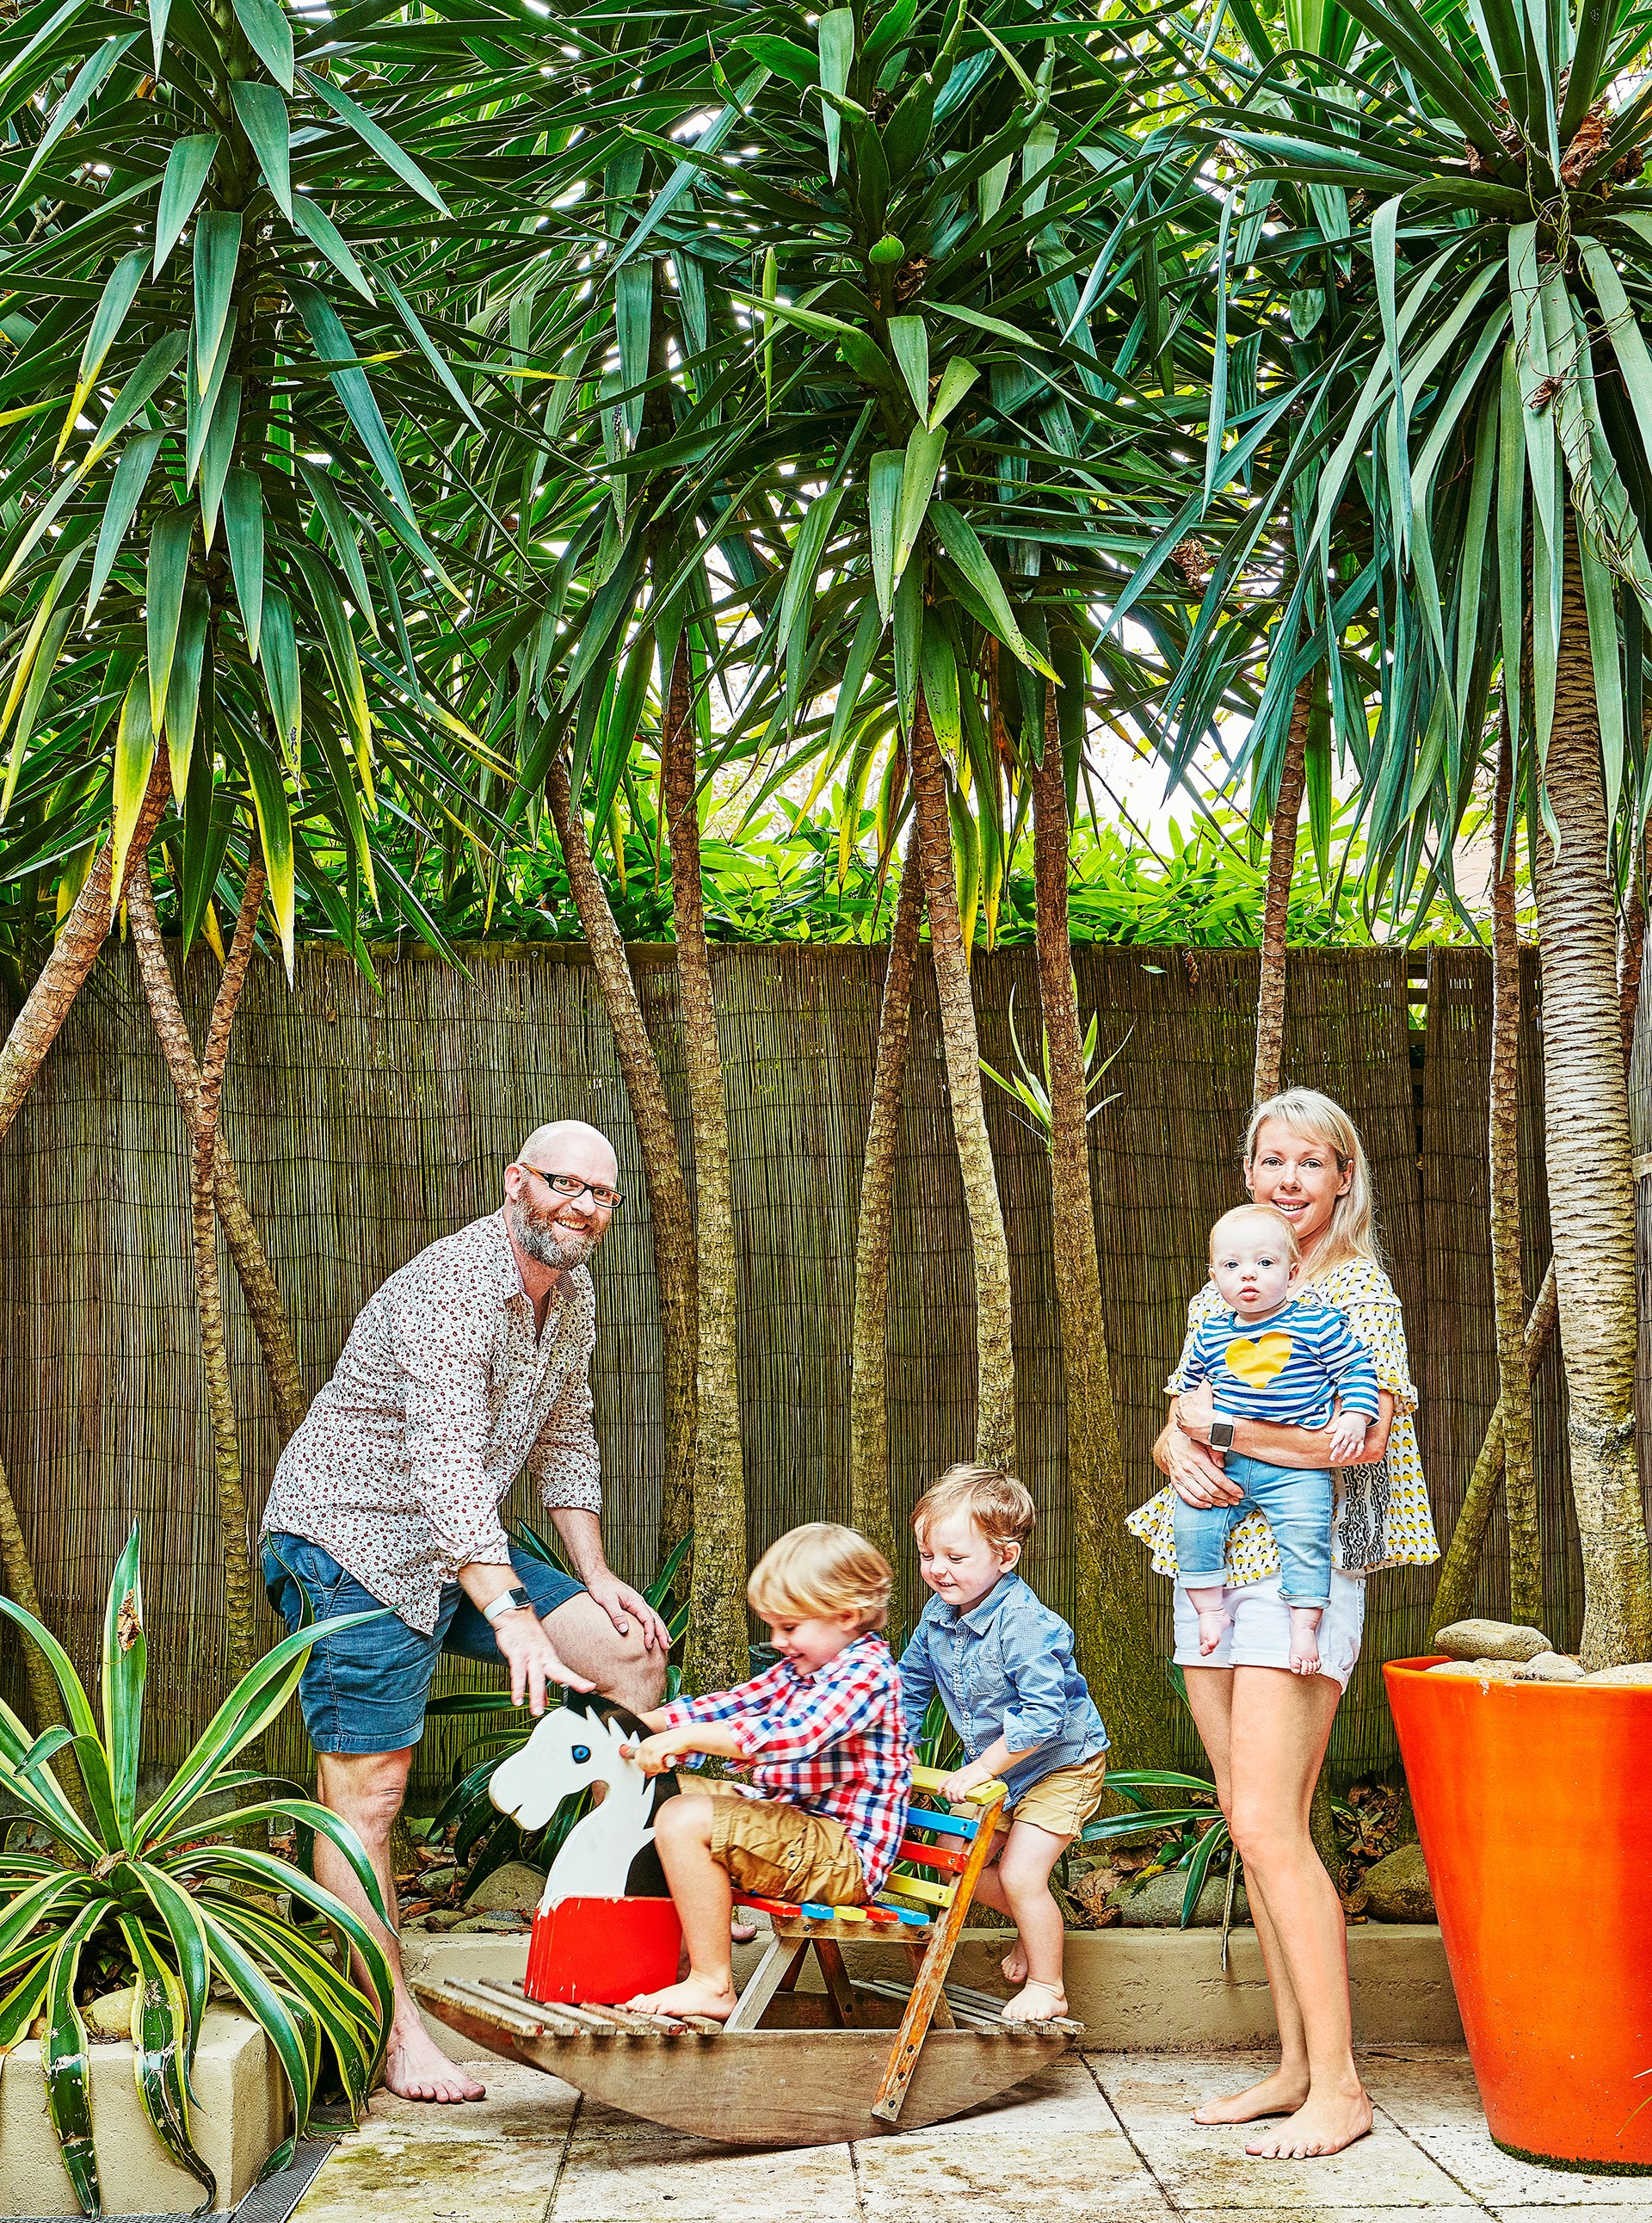 """**Use the same plant en masse** – choose one plant variety that will thrive in your garden and apply generously for a uniform look. [Take a tour of this playful home bursting with colour](http://www.homestolove.com.au/a-playful-home-bursting-with-colour-3894